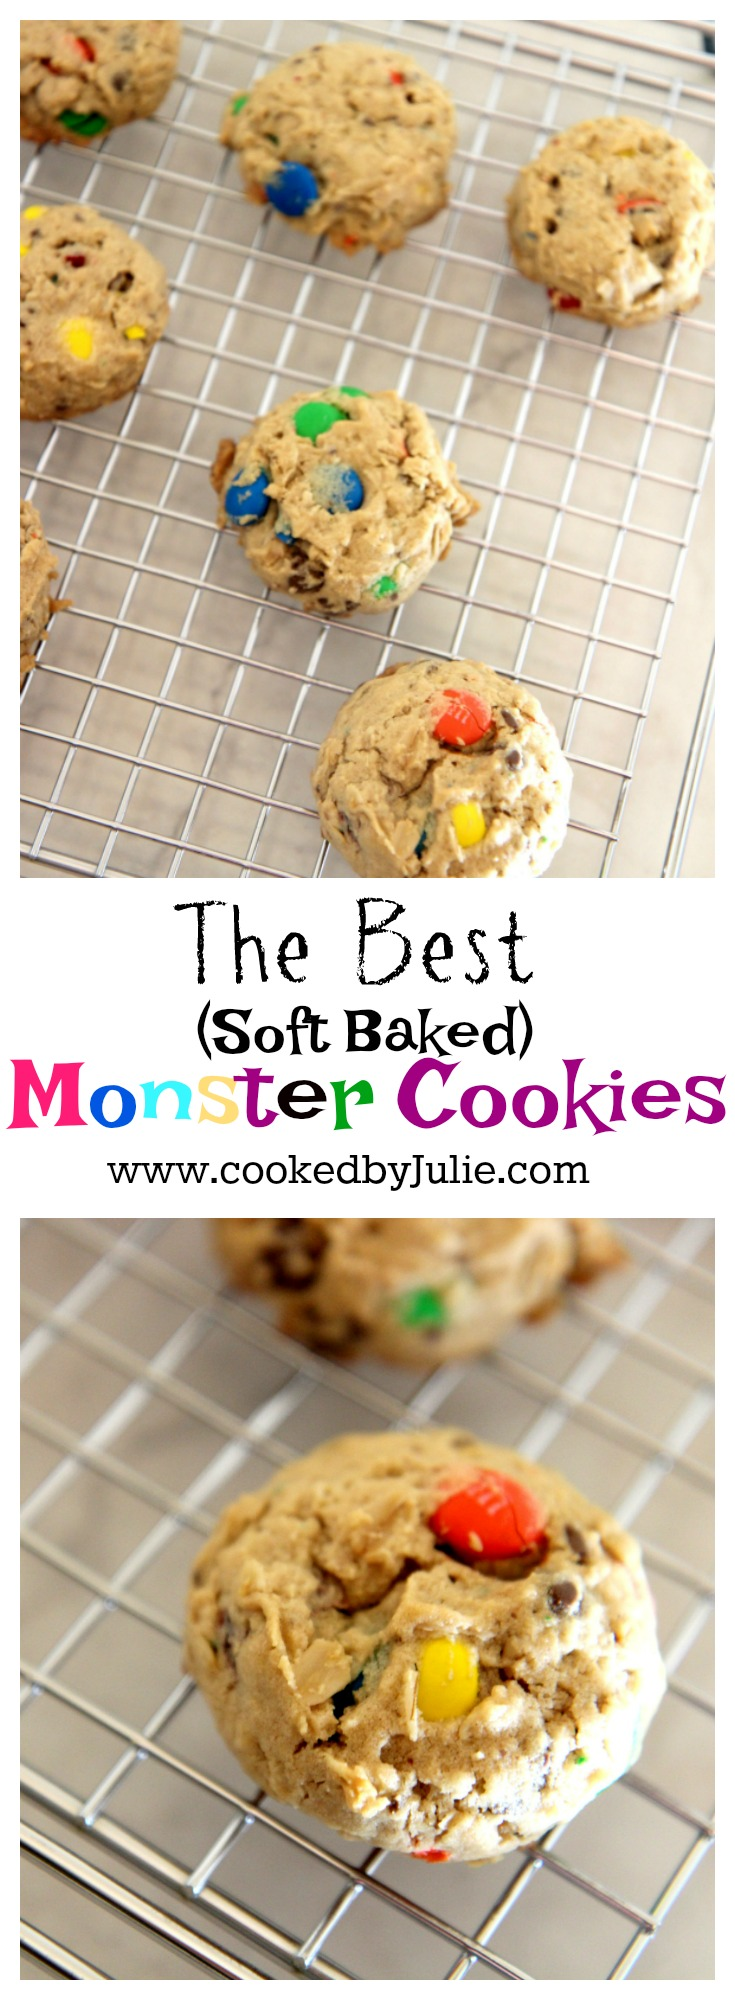 Monster Cookies | Cooked by Julie